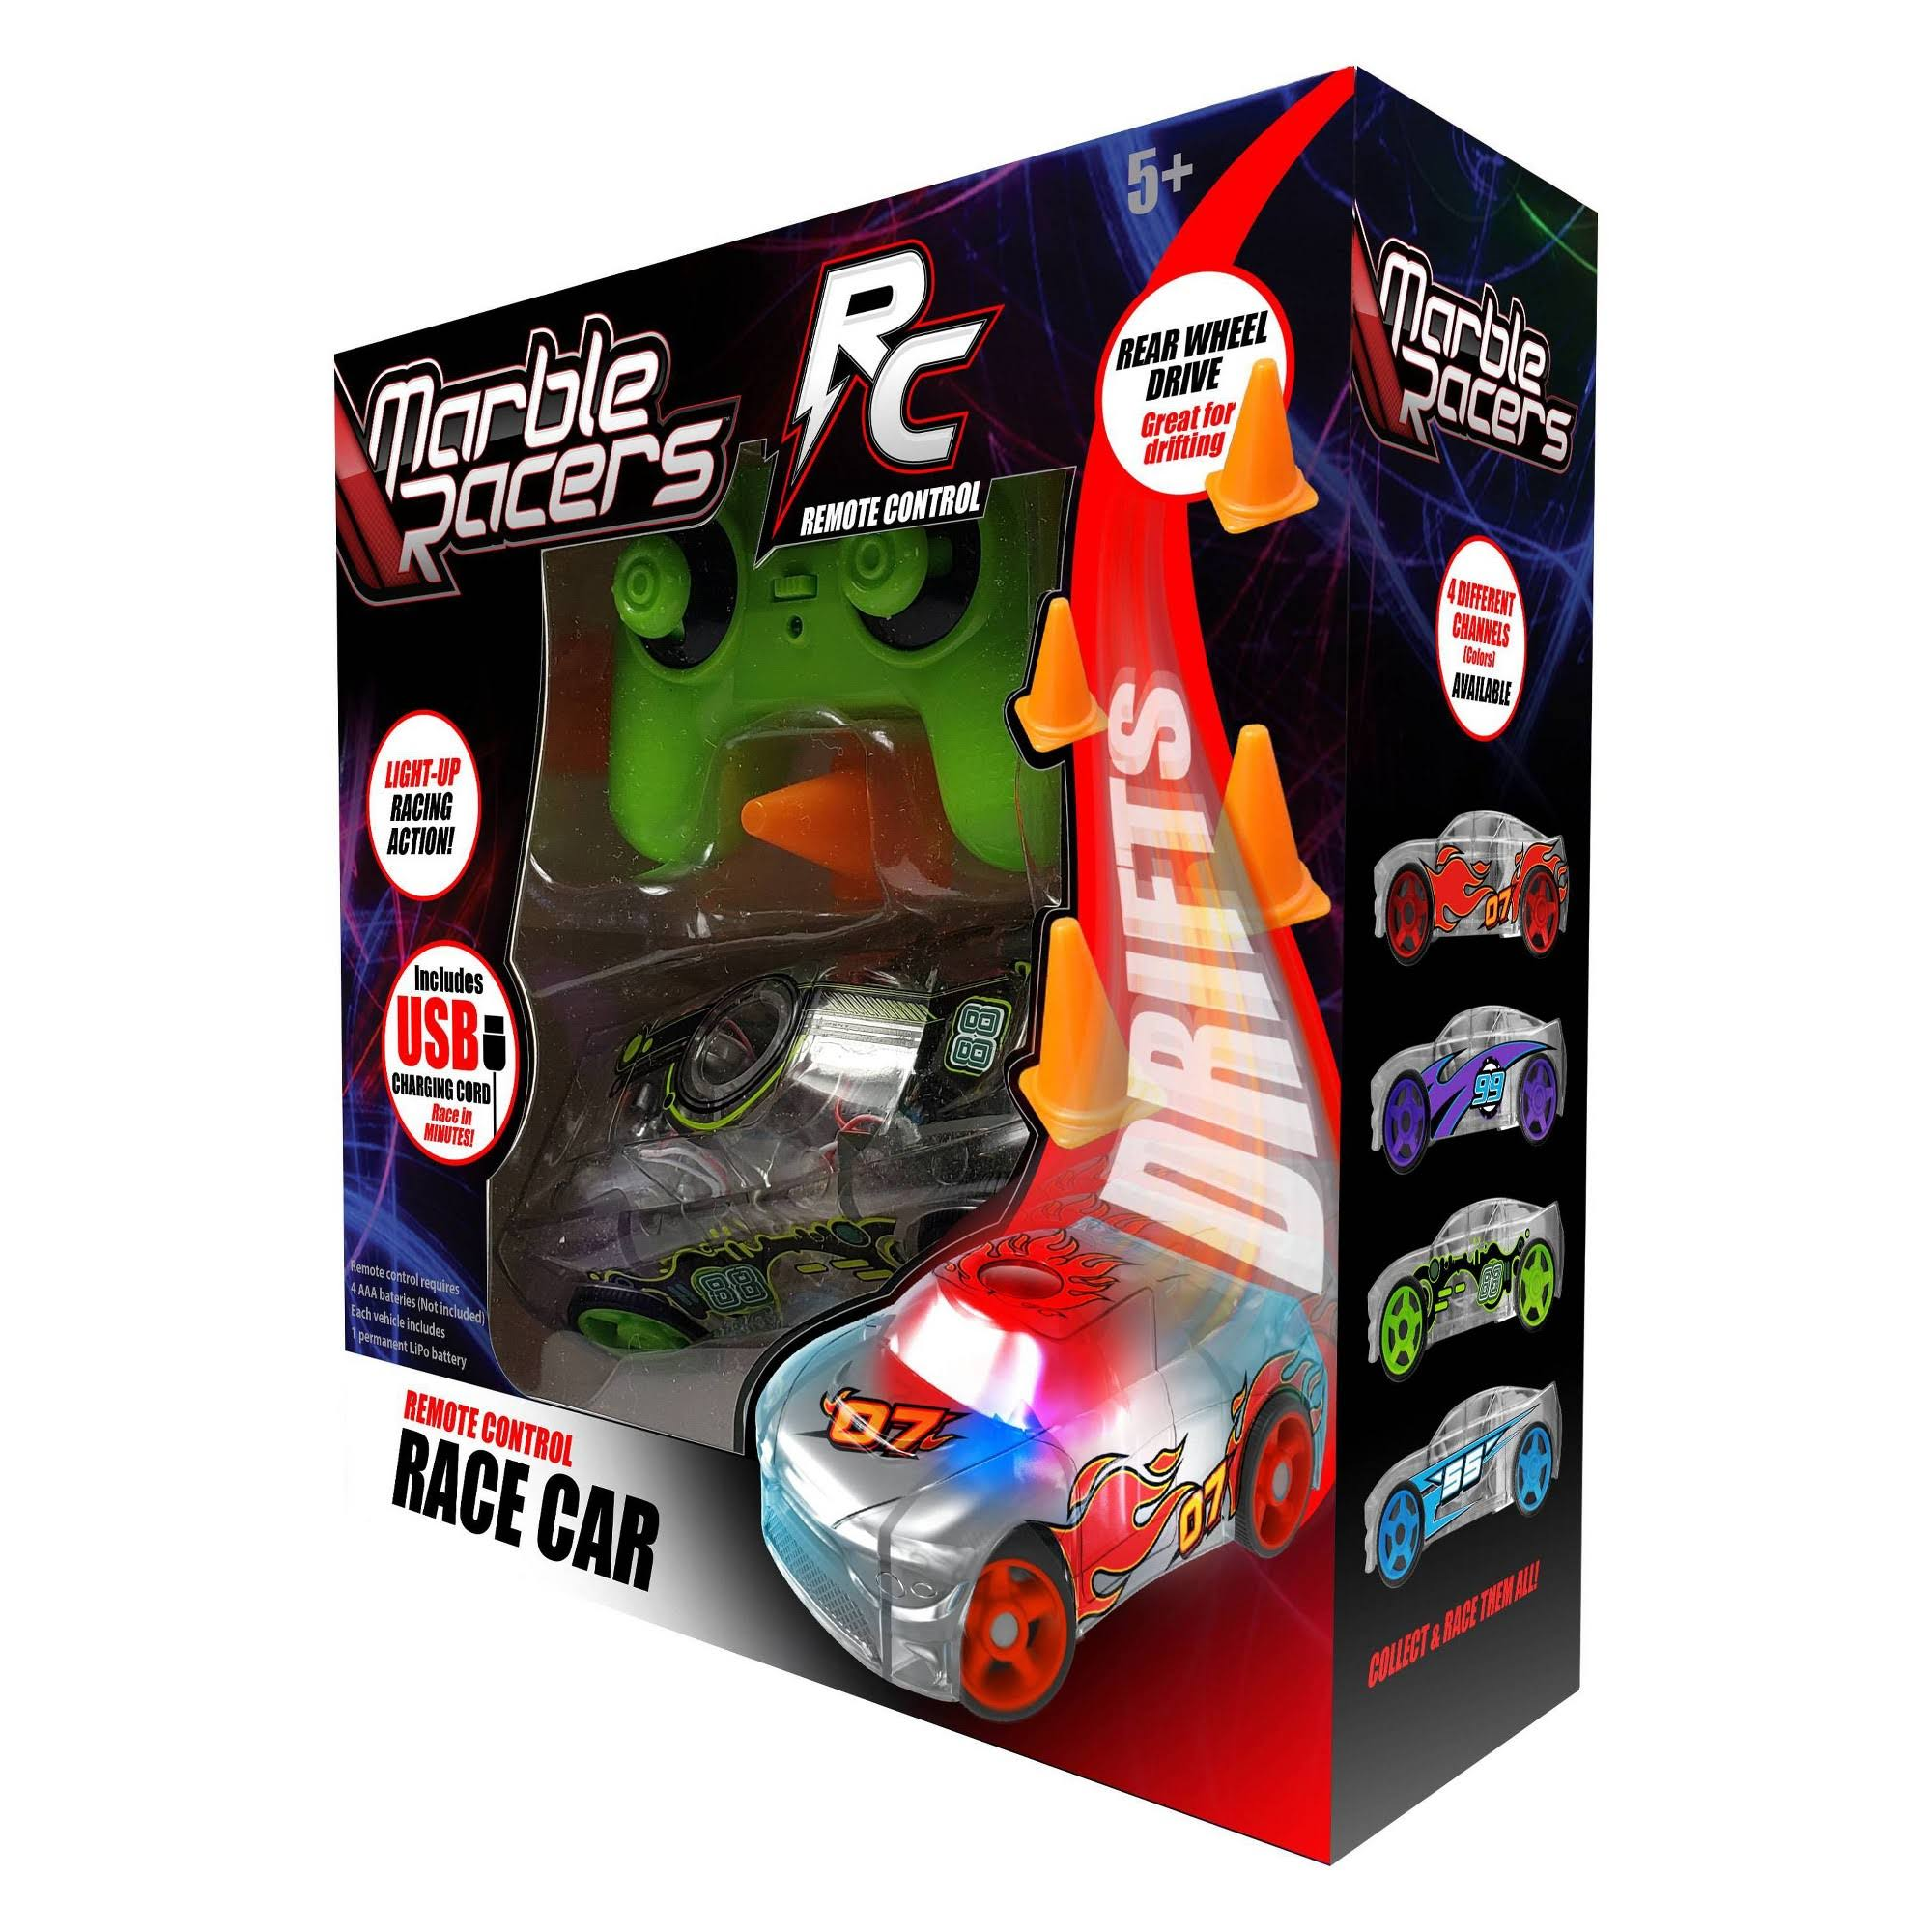 Marble Racers RC Race Car - Green